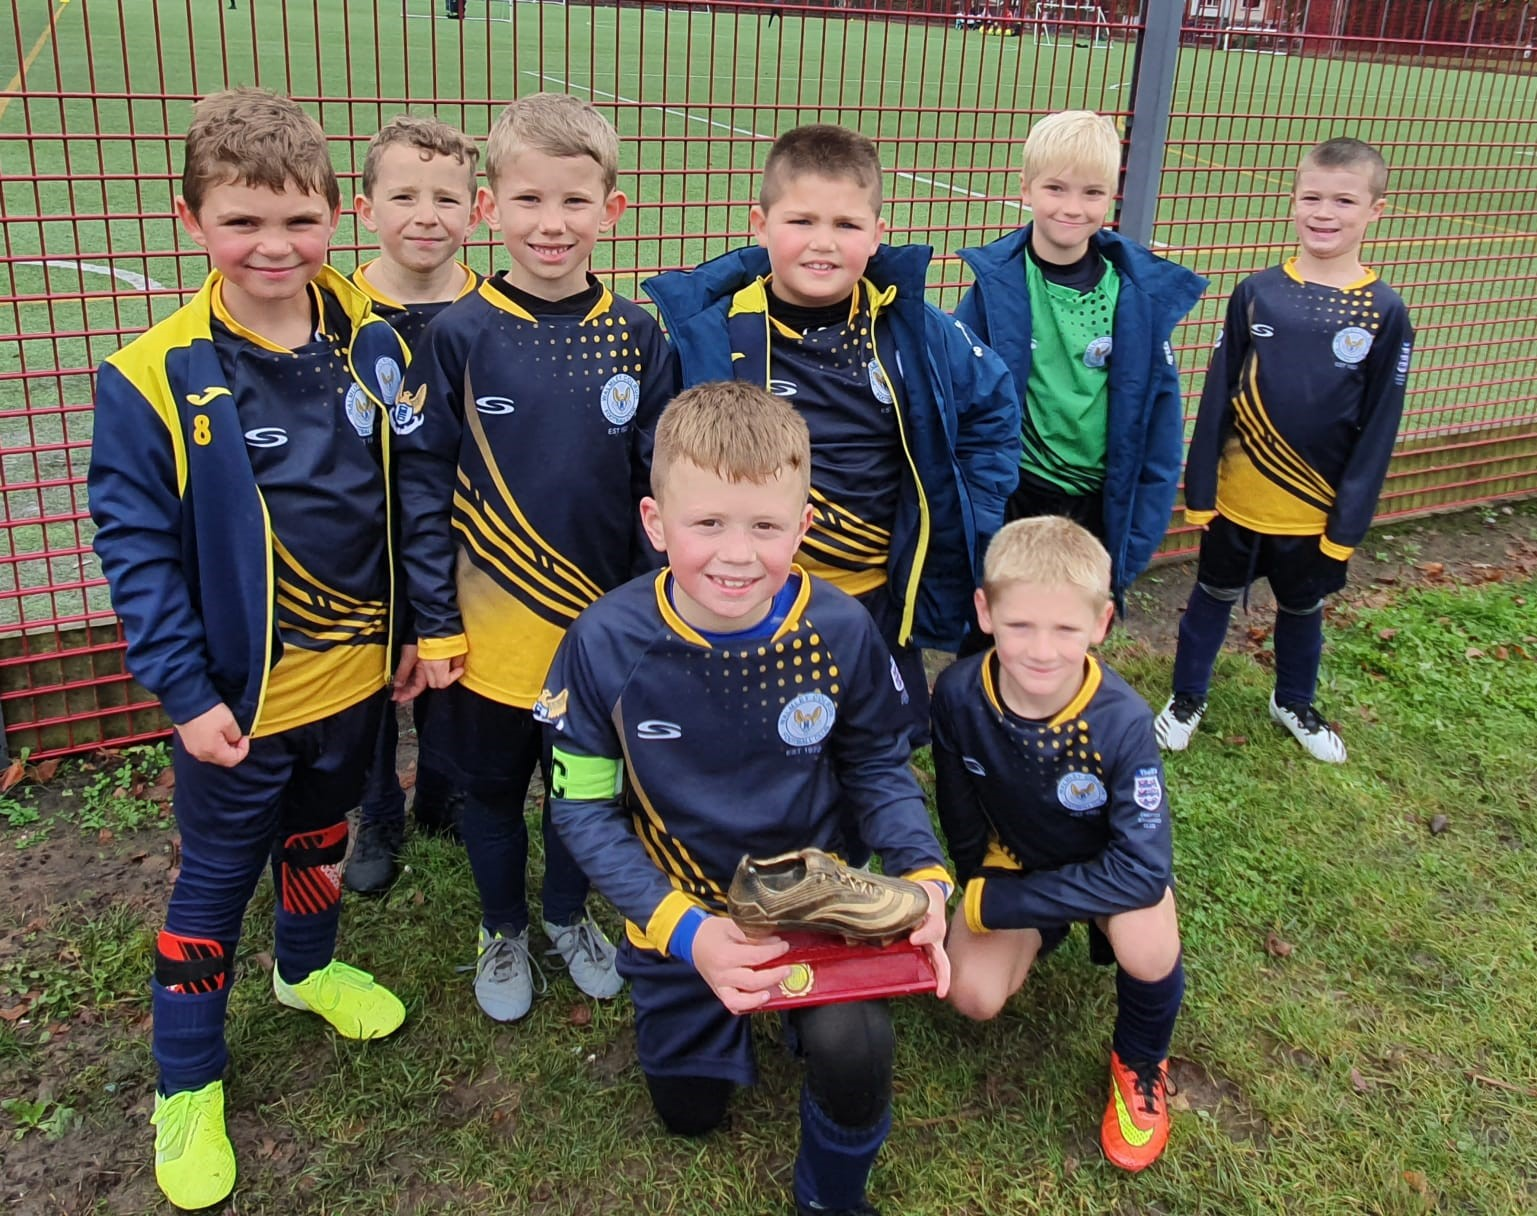 Unlucky Game for Colron Blues vs Walsall Wood Pumas